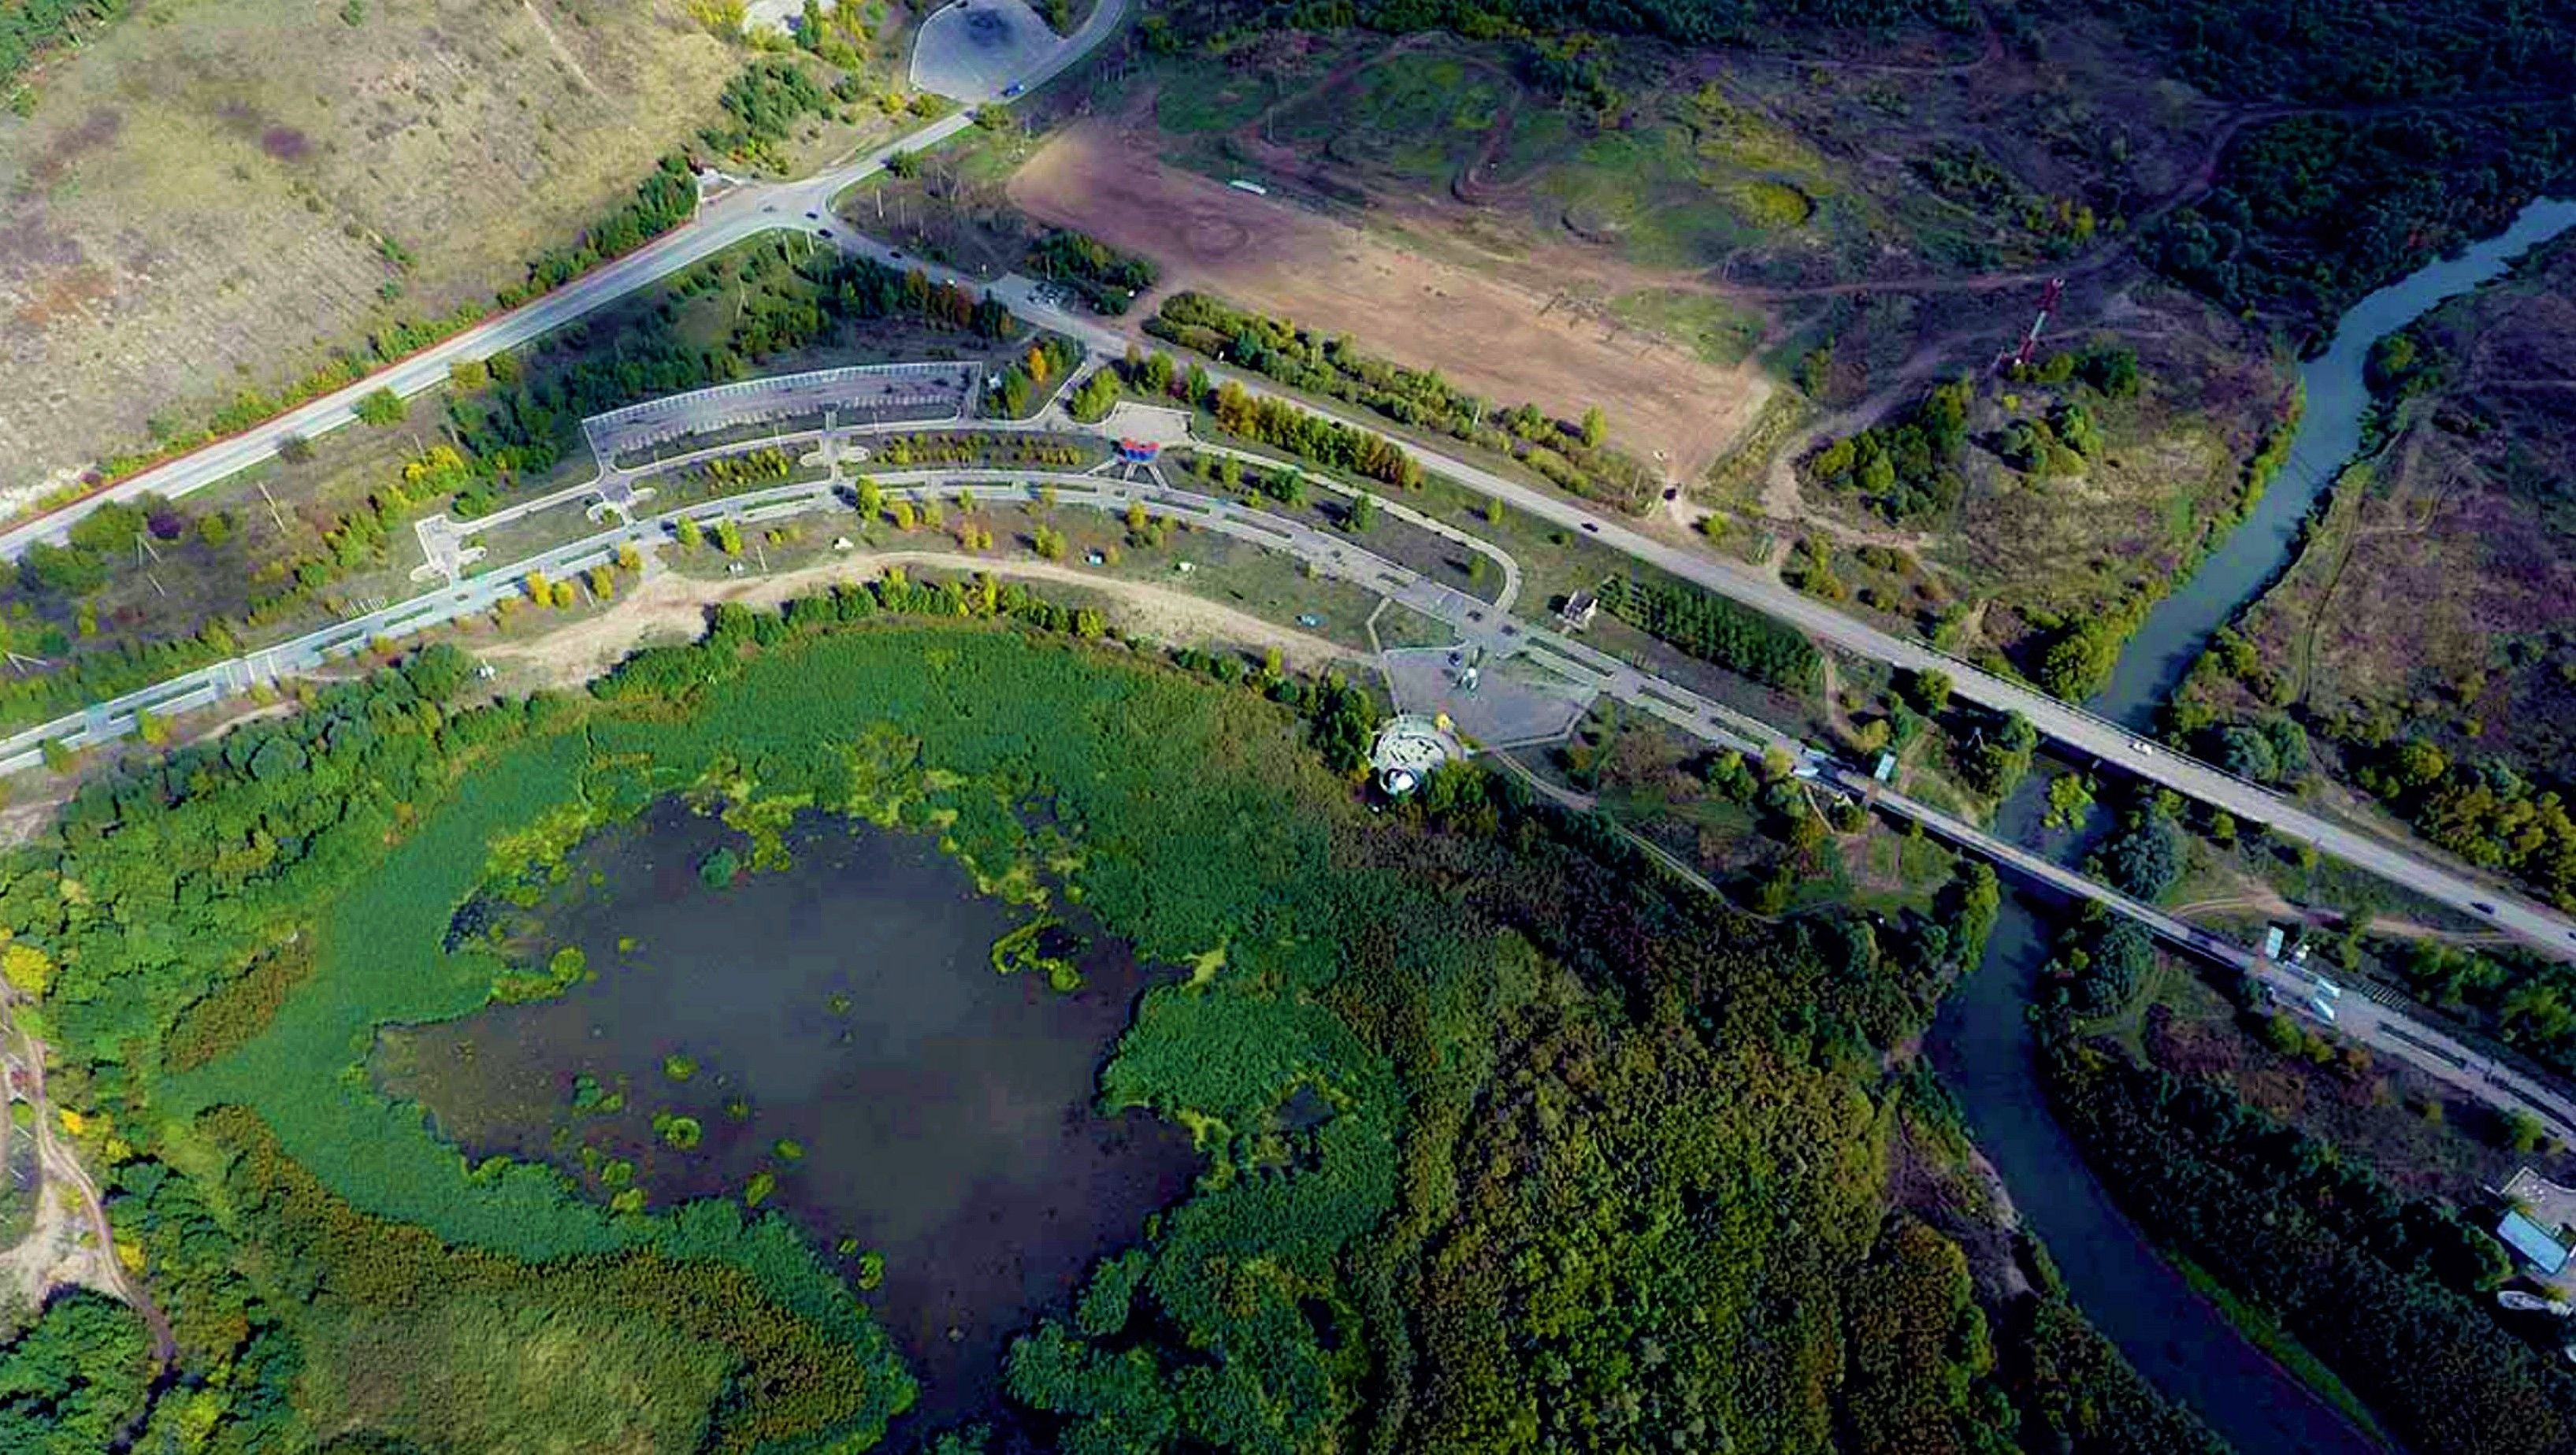 The Open International Architectural and Urban Planning Competition for the development of a master plan for the territory adjacent to the Almetyevsk reservoir on the Stepnoy Zay river